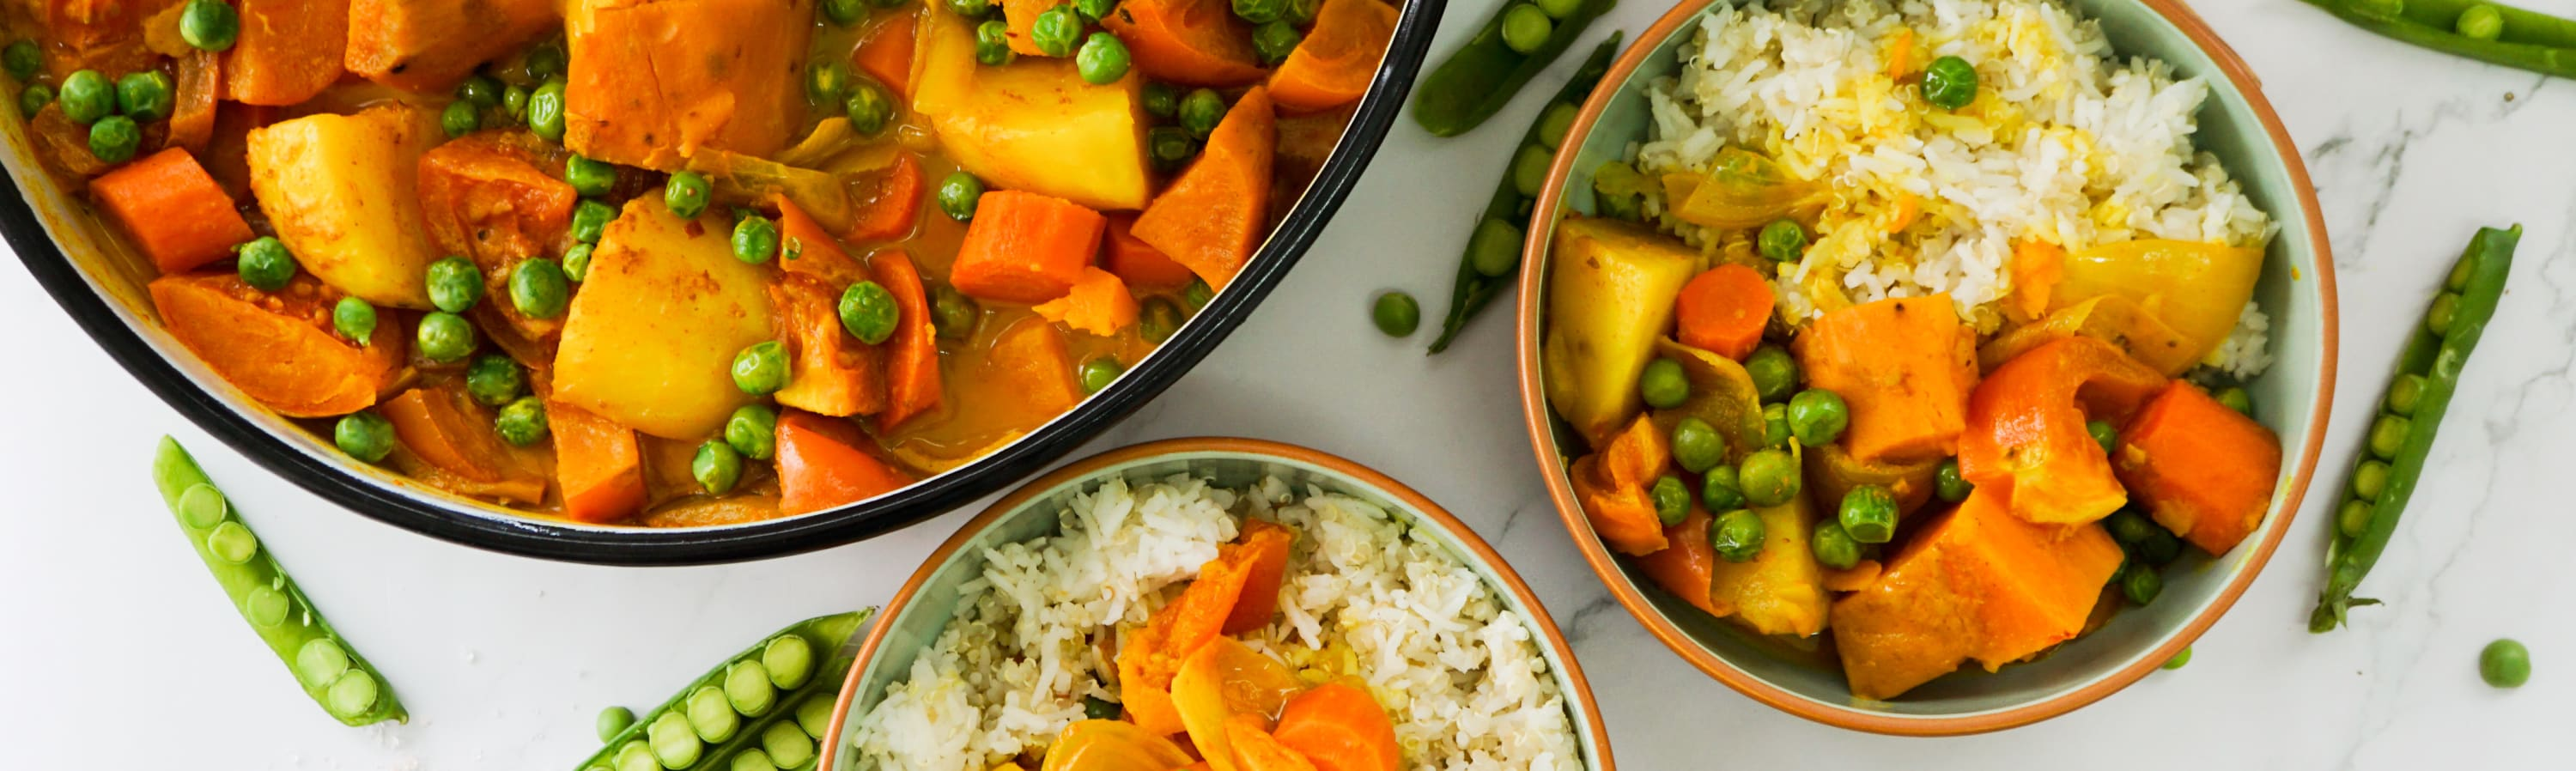 vegan yellow curry served with rice and quinoa